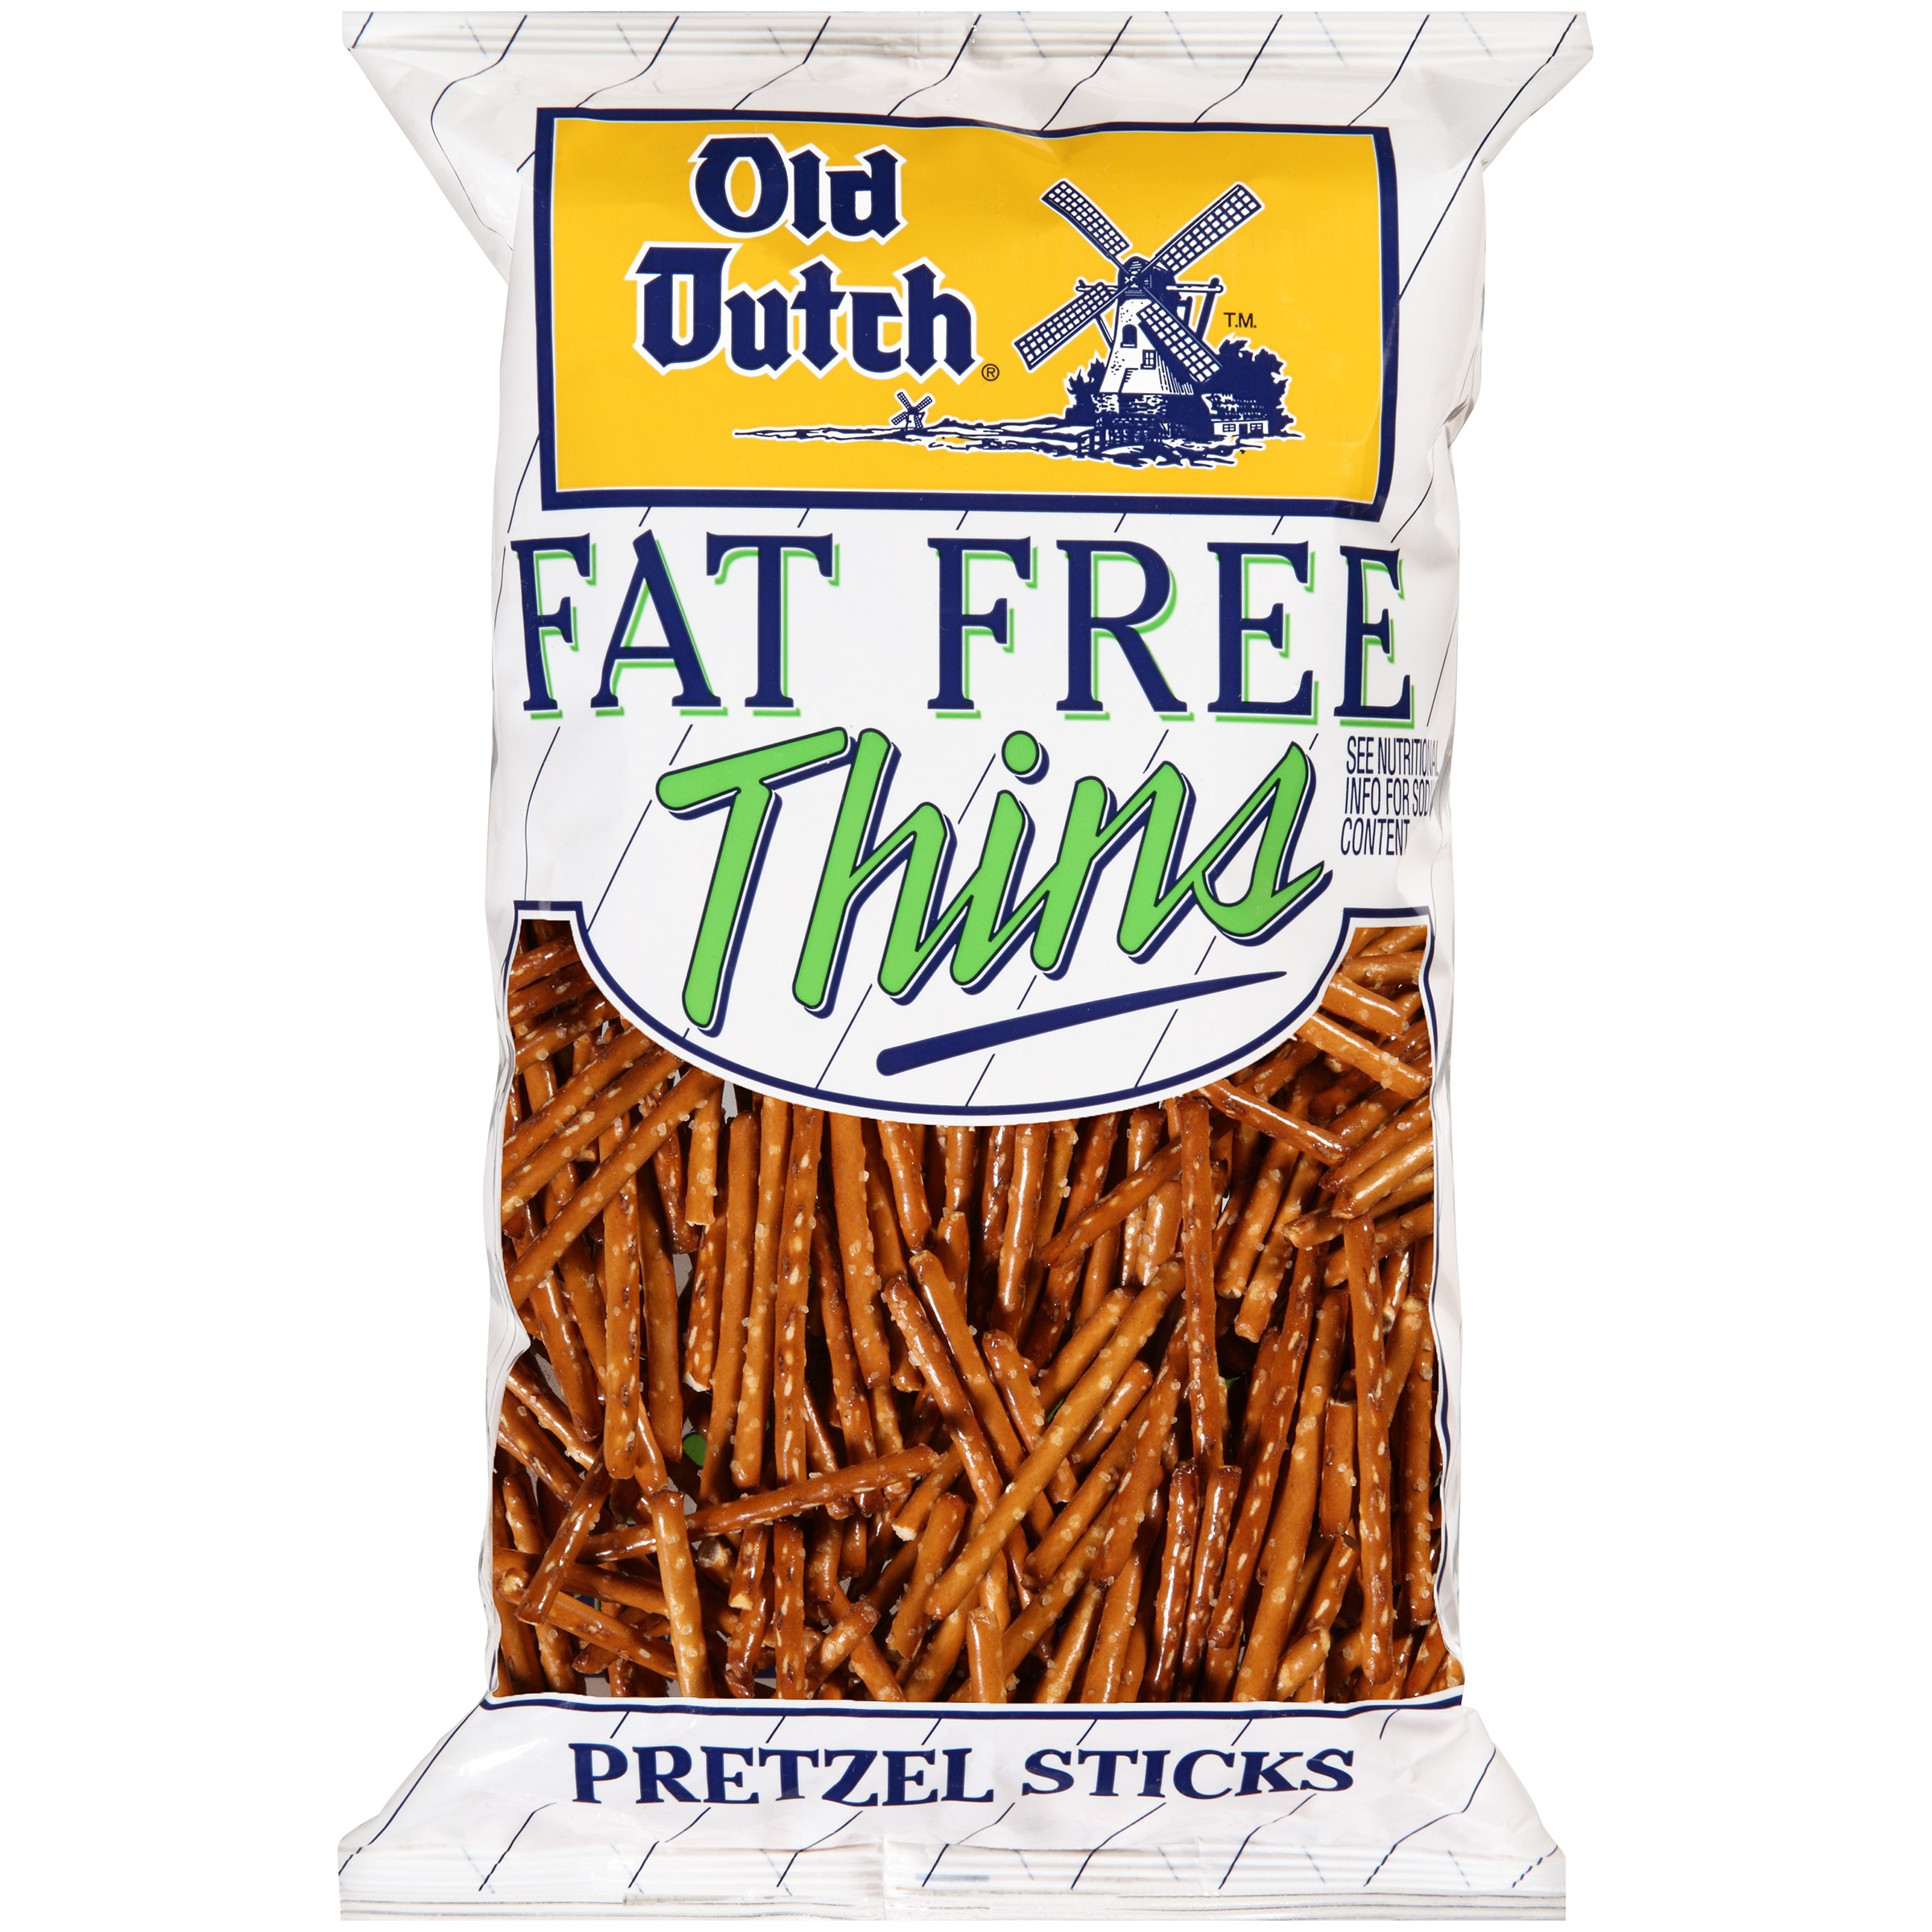 Old Dutch Fat Free Pretzel Sticks 15 oz. Bag